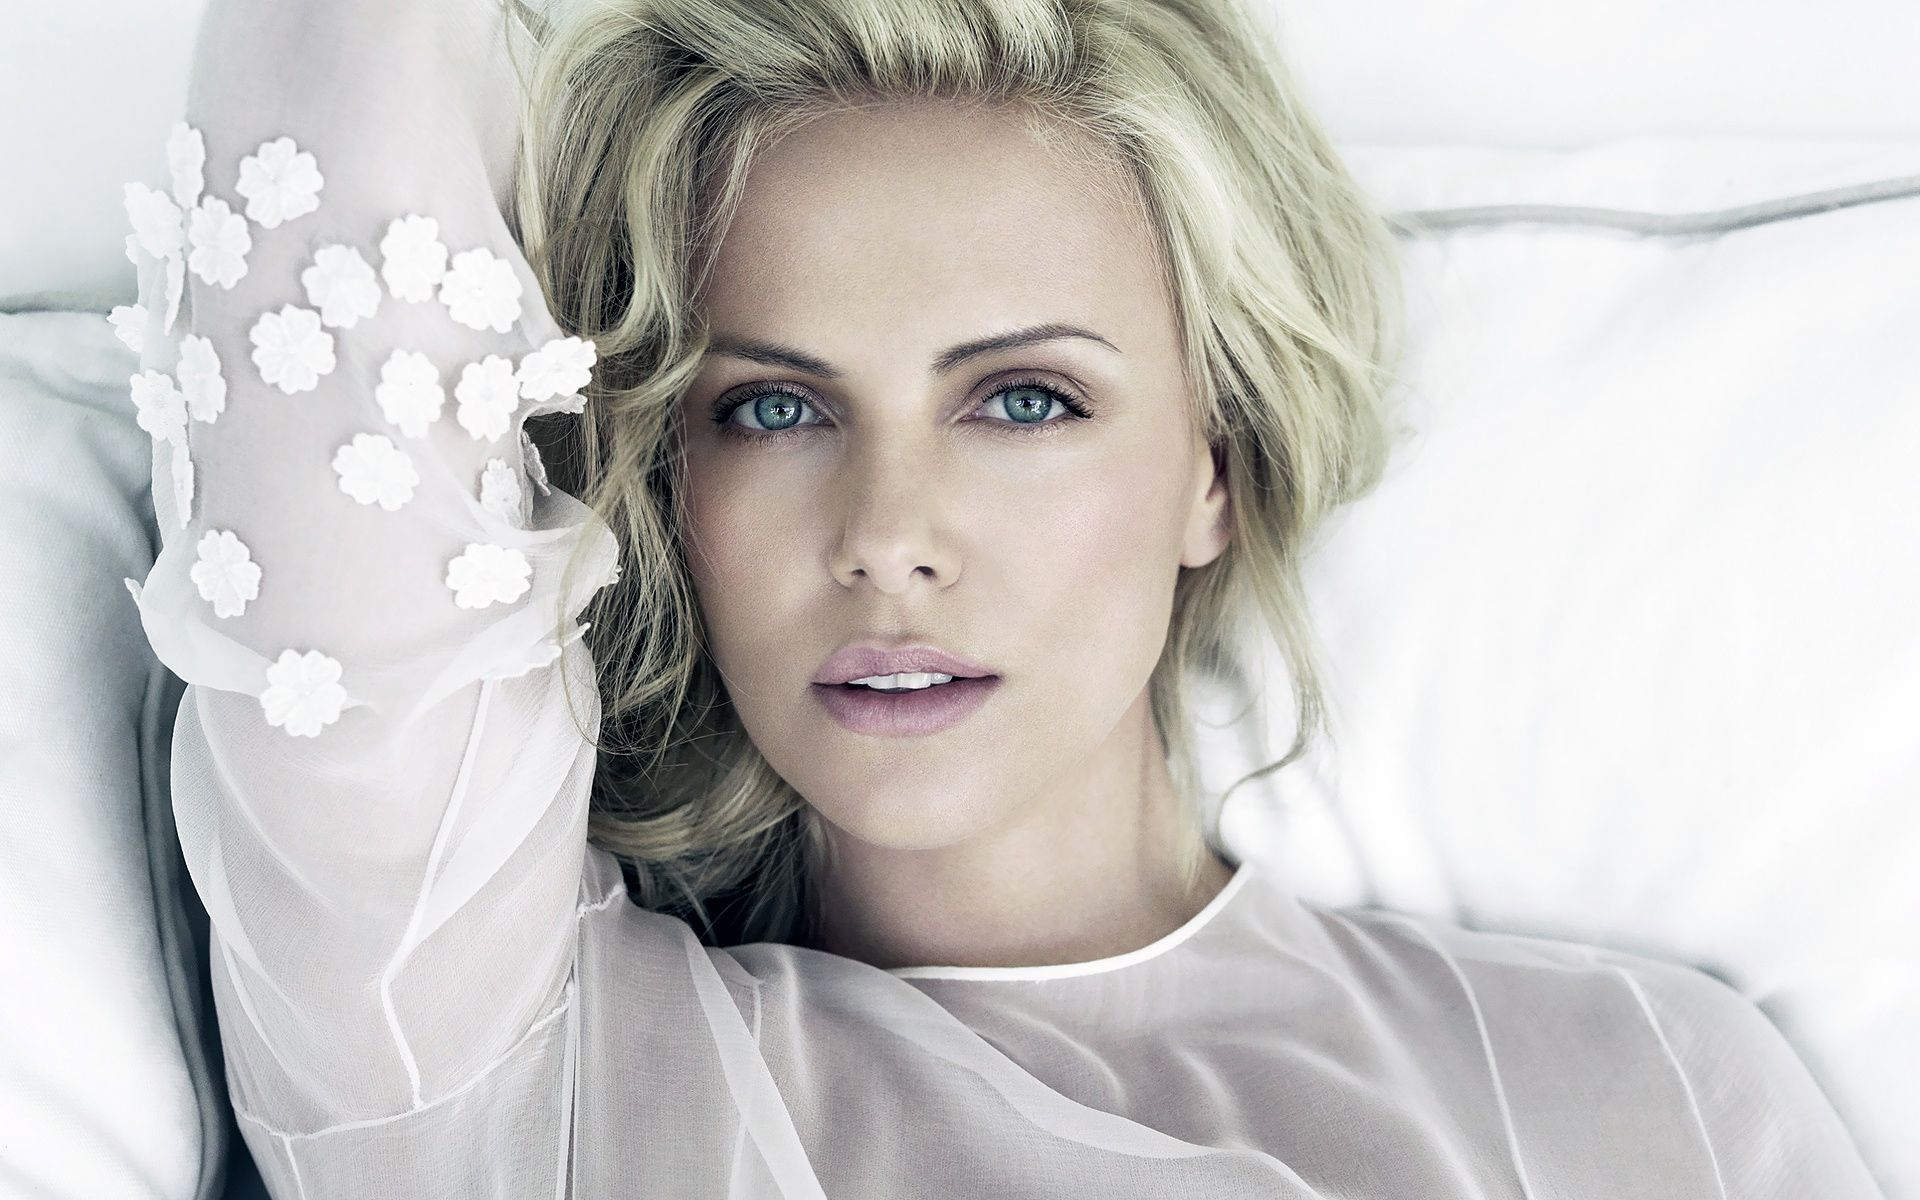 charlize theron gifcharlize theron son, charlize theron 2017, charlize theron 2016, charlize theron young, charlize theron dior, charlize theron gif, charlize theron movies, charlize theron short hair, charlize theron instagram, charlize theron films, charlize theron wikipedia, charlize theron interview, charlize theron oscar, charlize theron fan site, charlize theron twitter, charlize theron husband, charlize theron keanu reeves, charlize theron site, charlize theron фото, charlize theron filmi